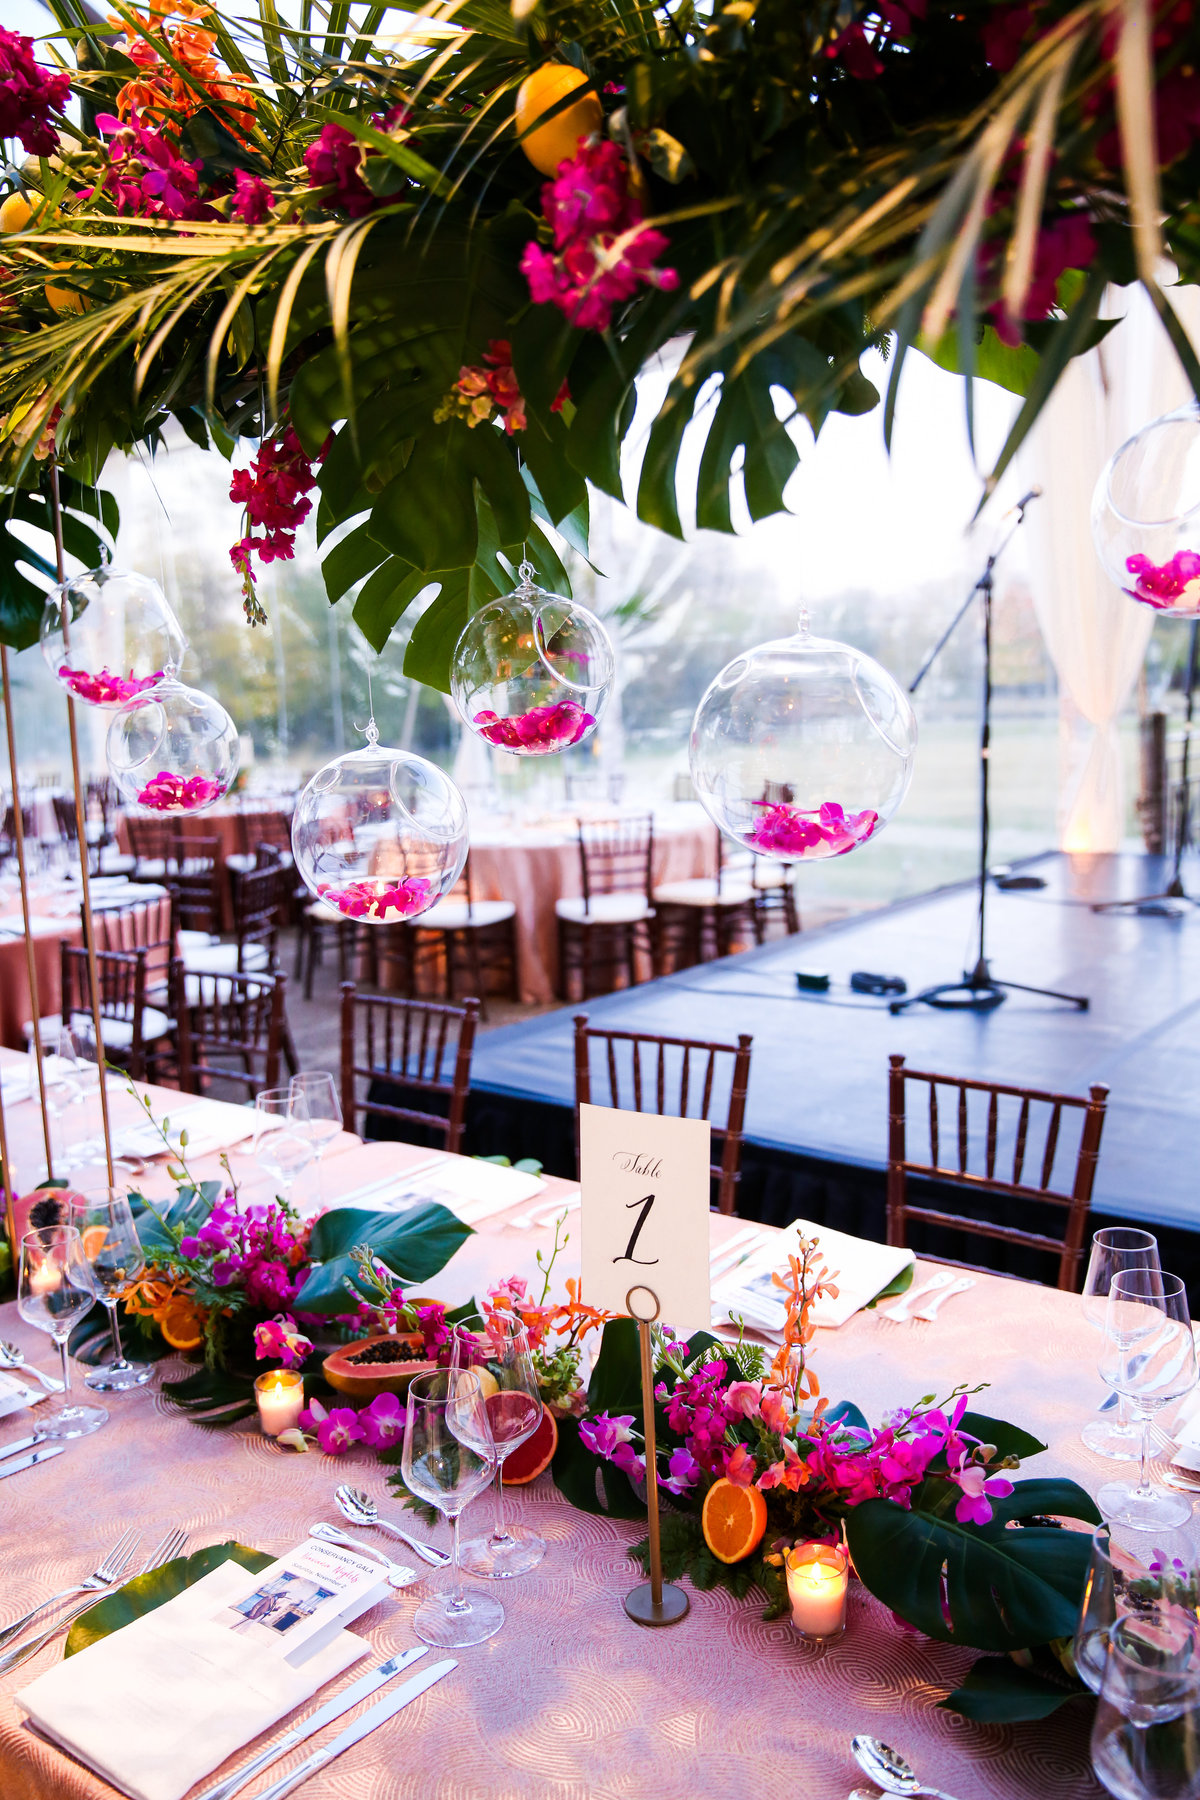 Conservancy Gala 2019 - Details  (61 of 237)